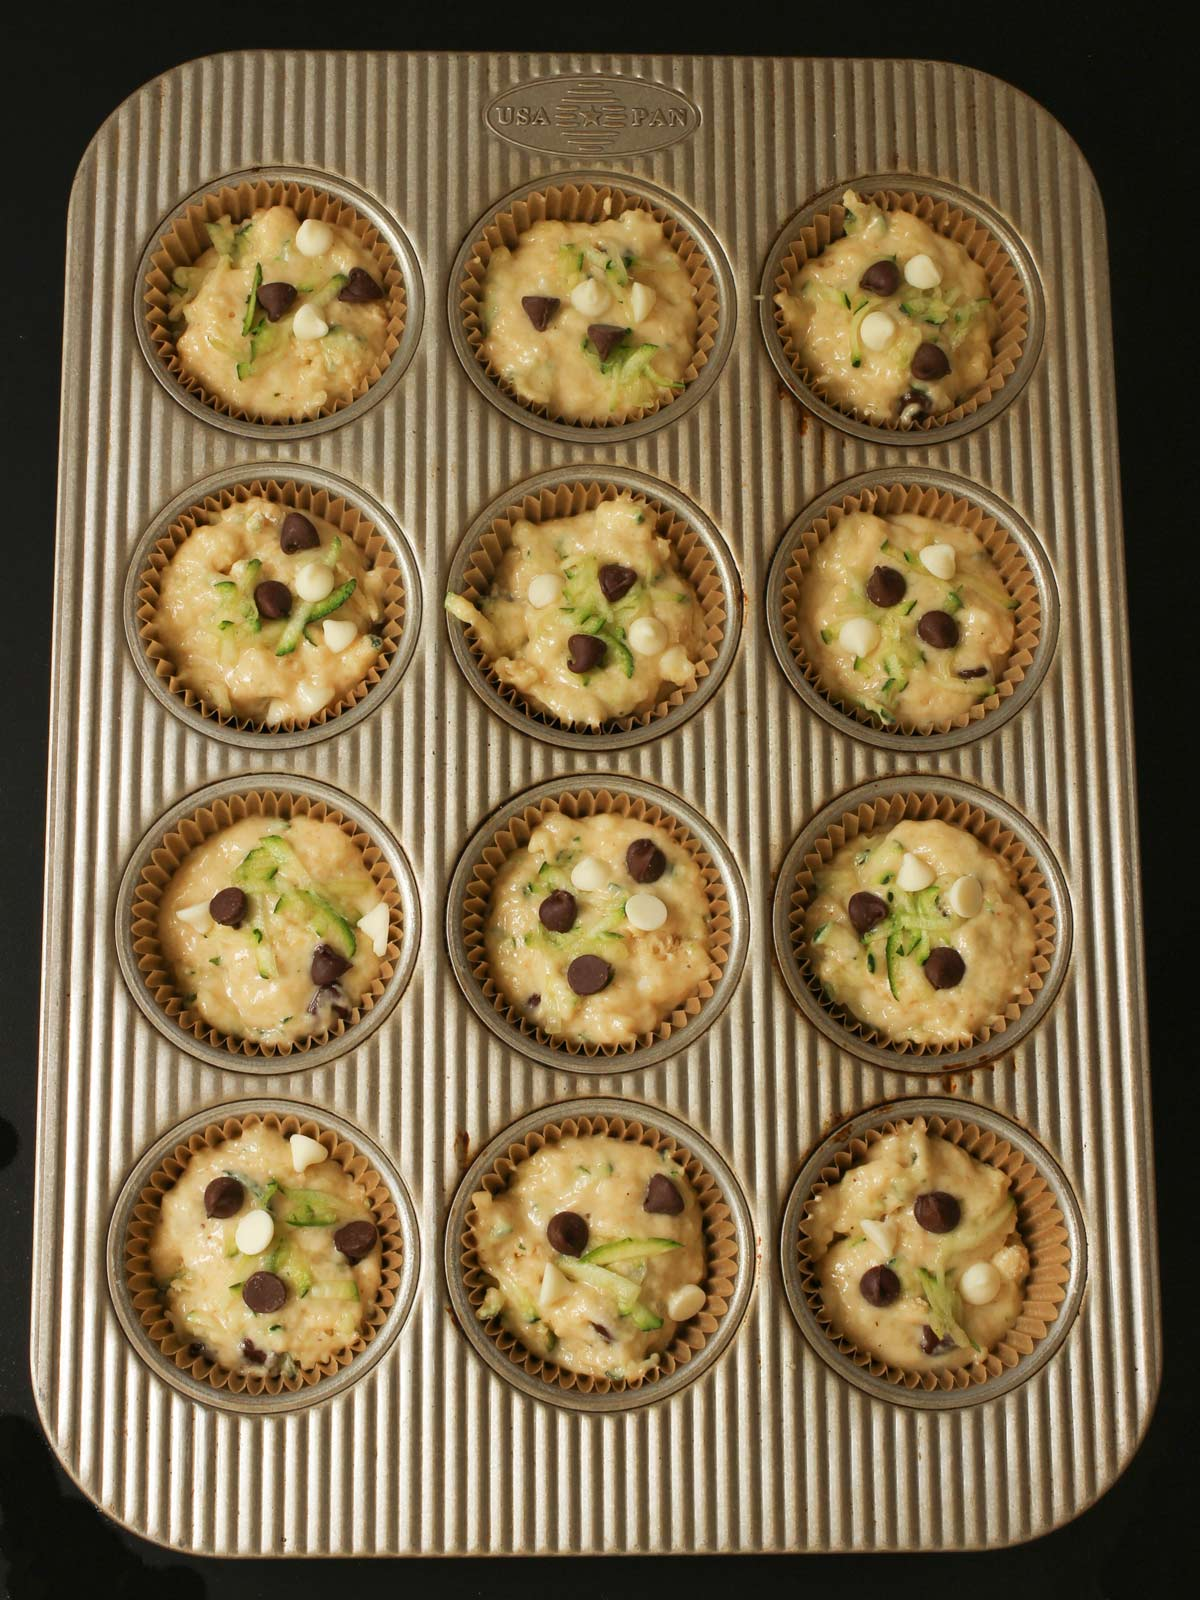 chocolate chips topping the uncooked batter in the muffin tins.